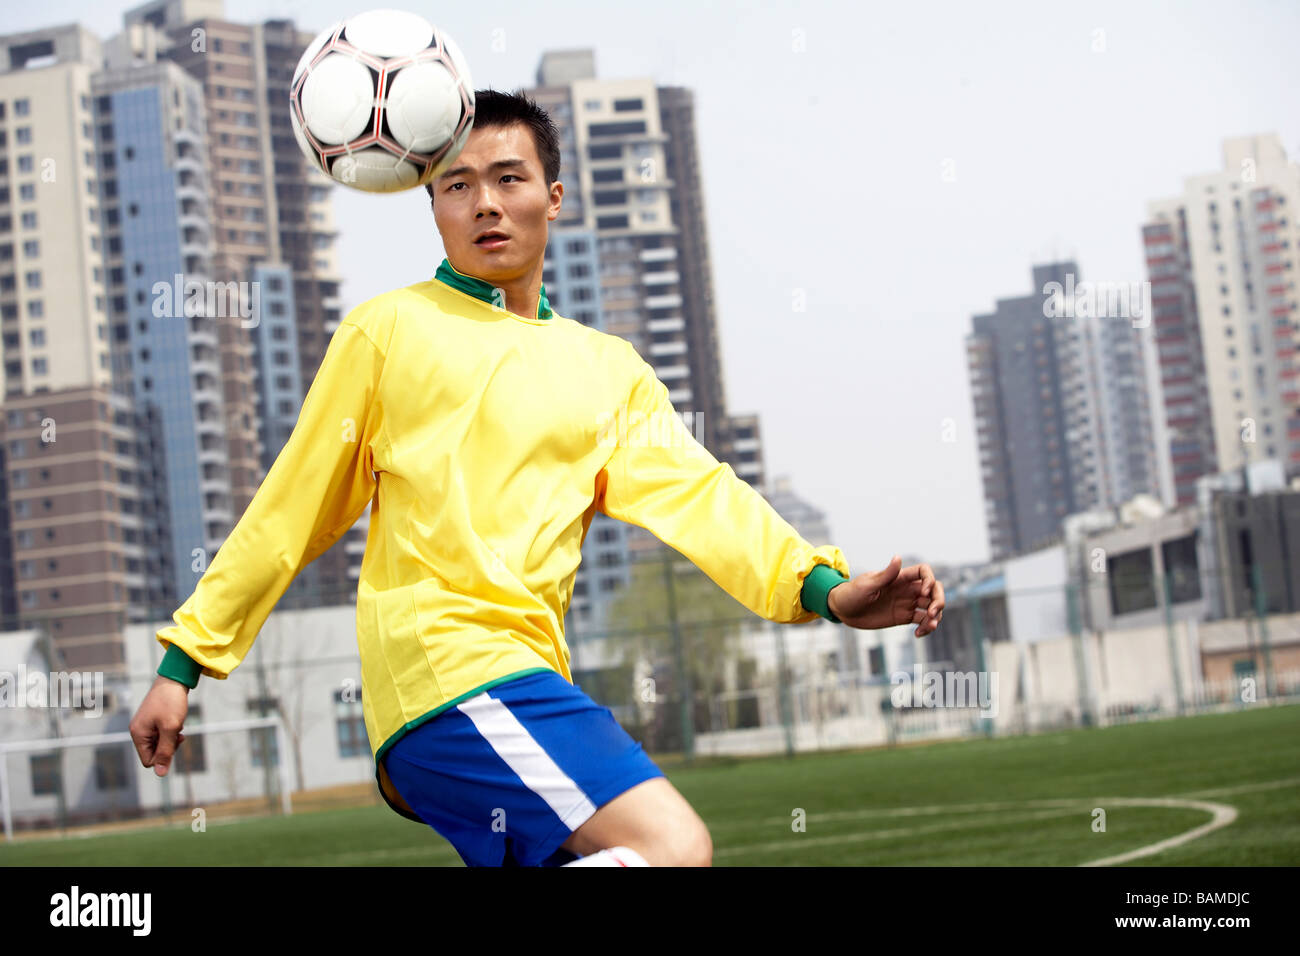 Man Playing Soccer - Stock Image